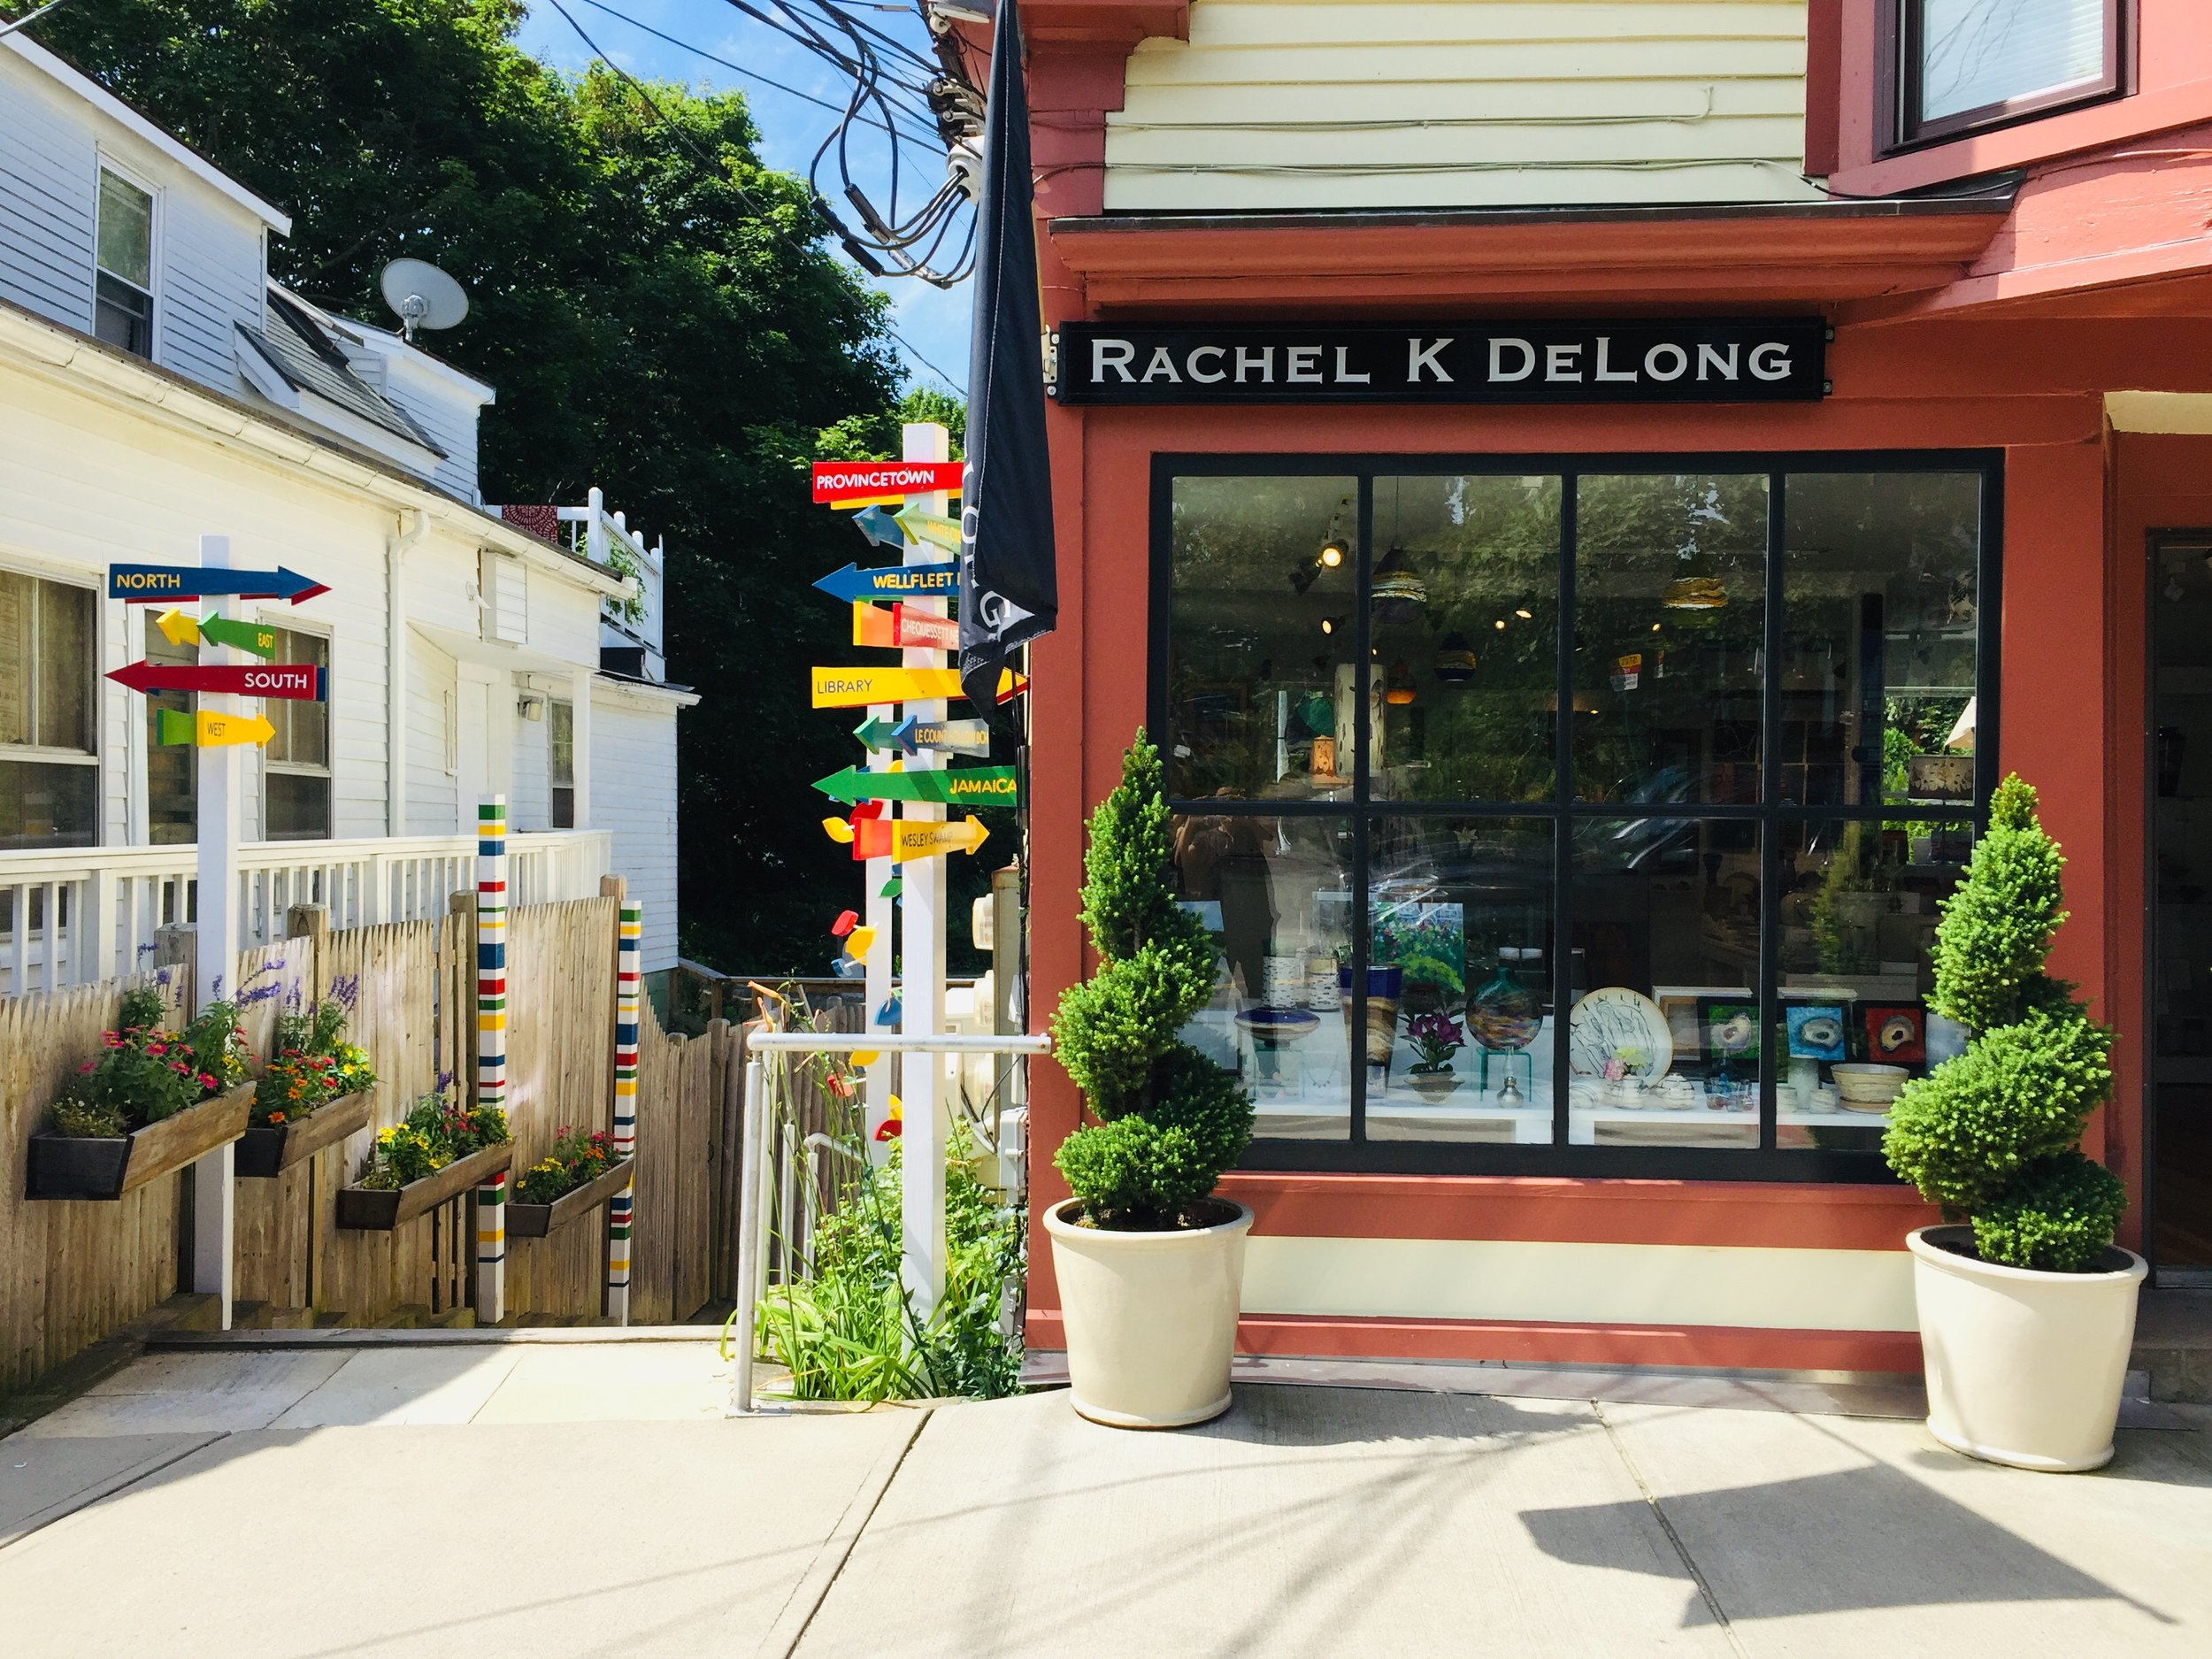 Rachel K DeLong Wellfleet